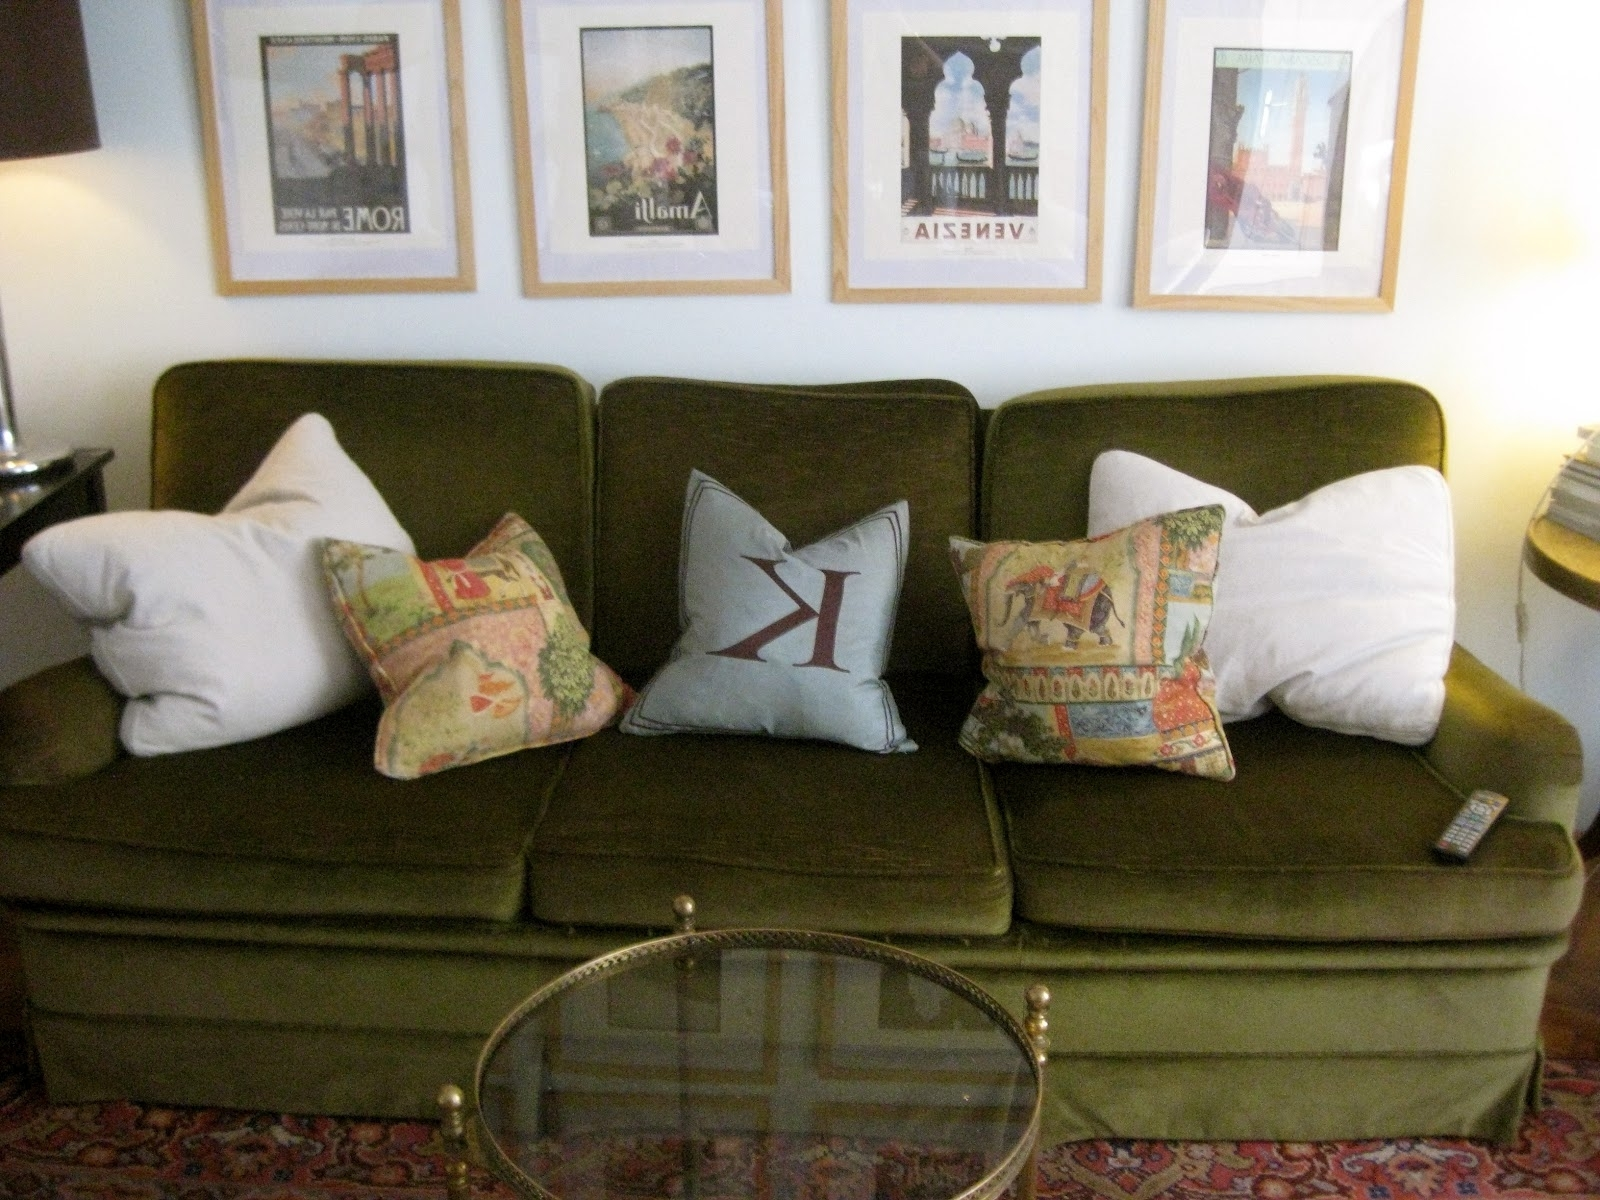 Green Sofa Chairs Within 2017 Furniture : Fancygreenleathercouchdecoratingideas81Inwithgreen Of (View 7 of 15)